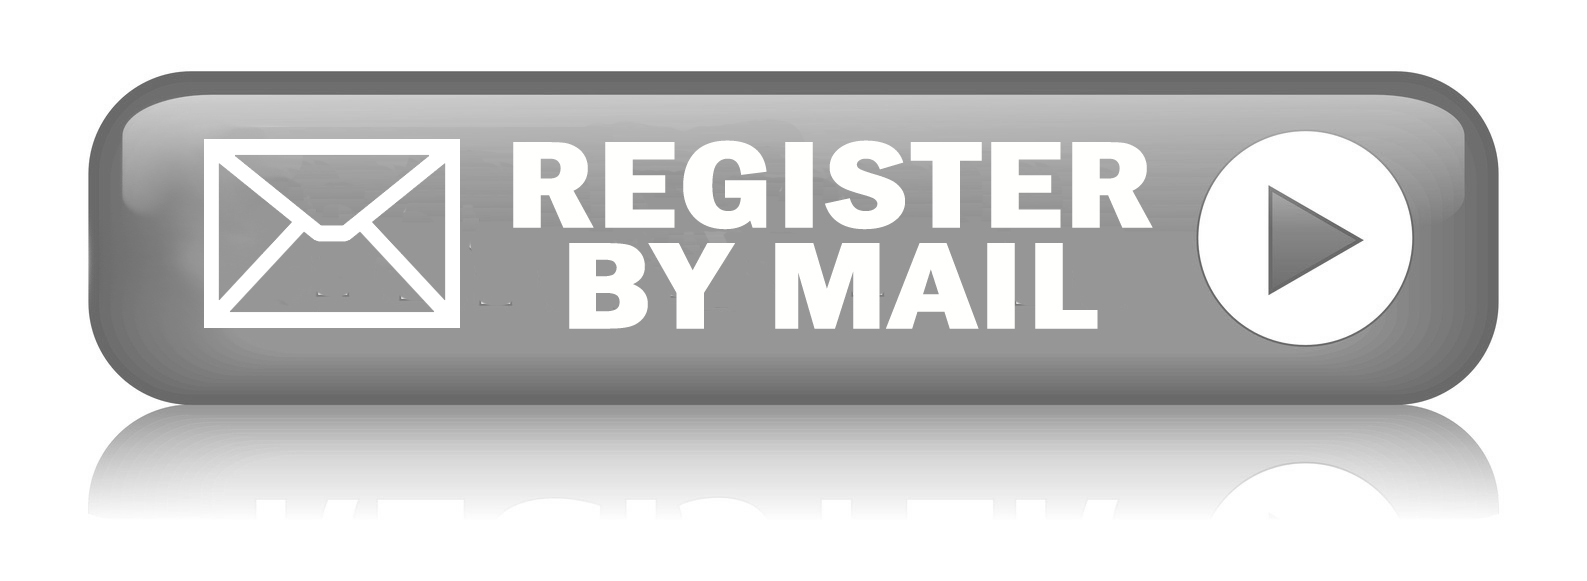 Register by mail